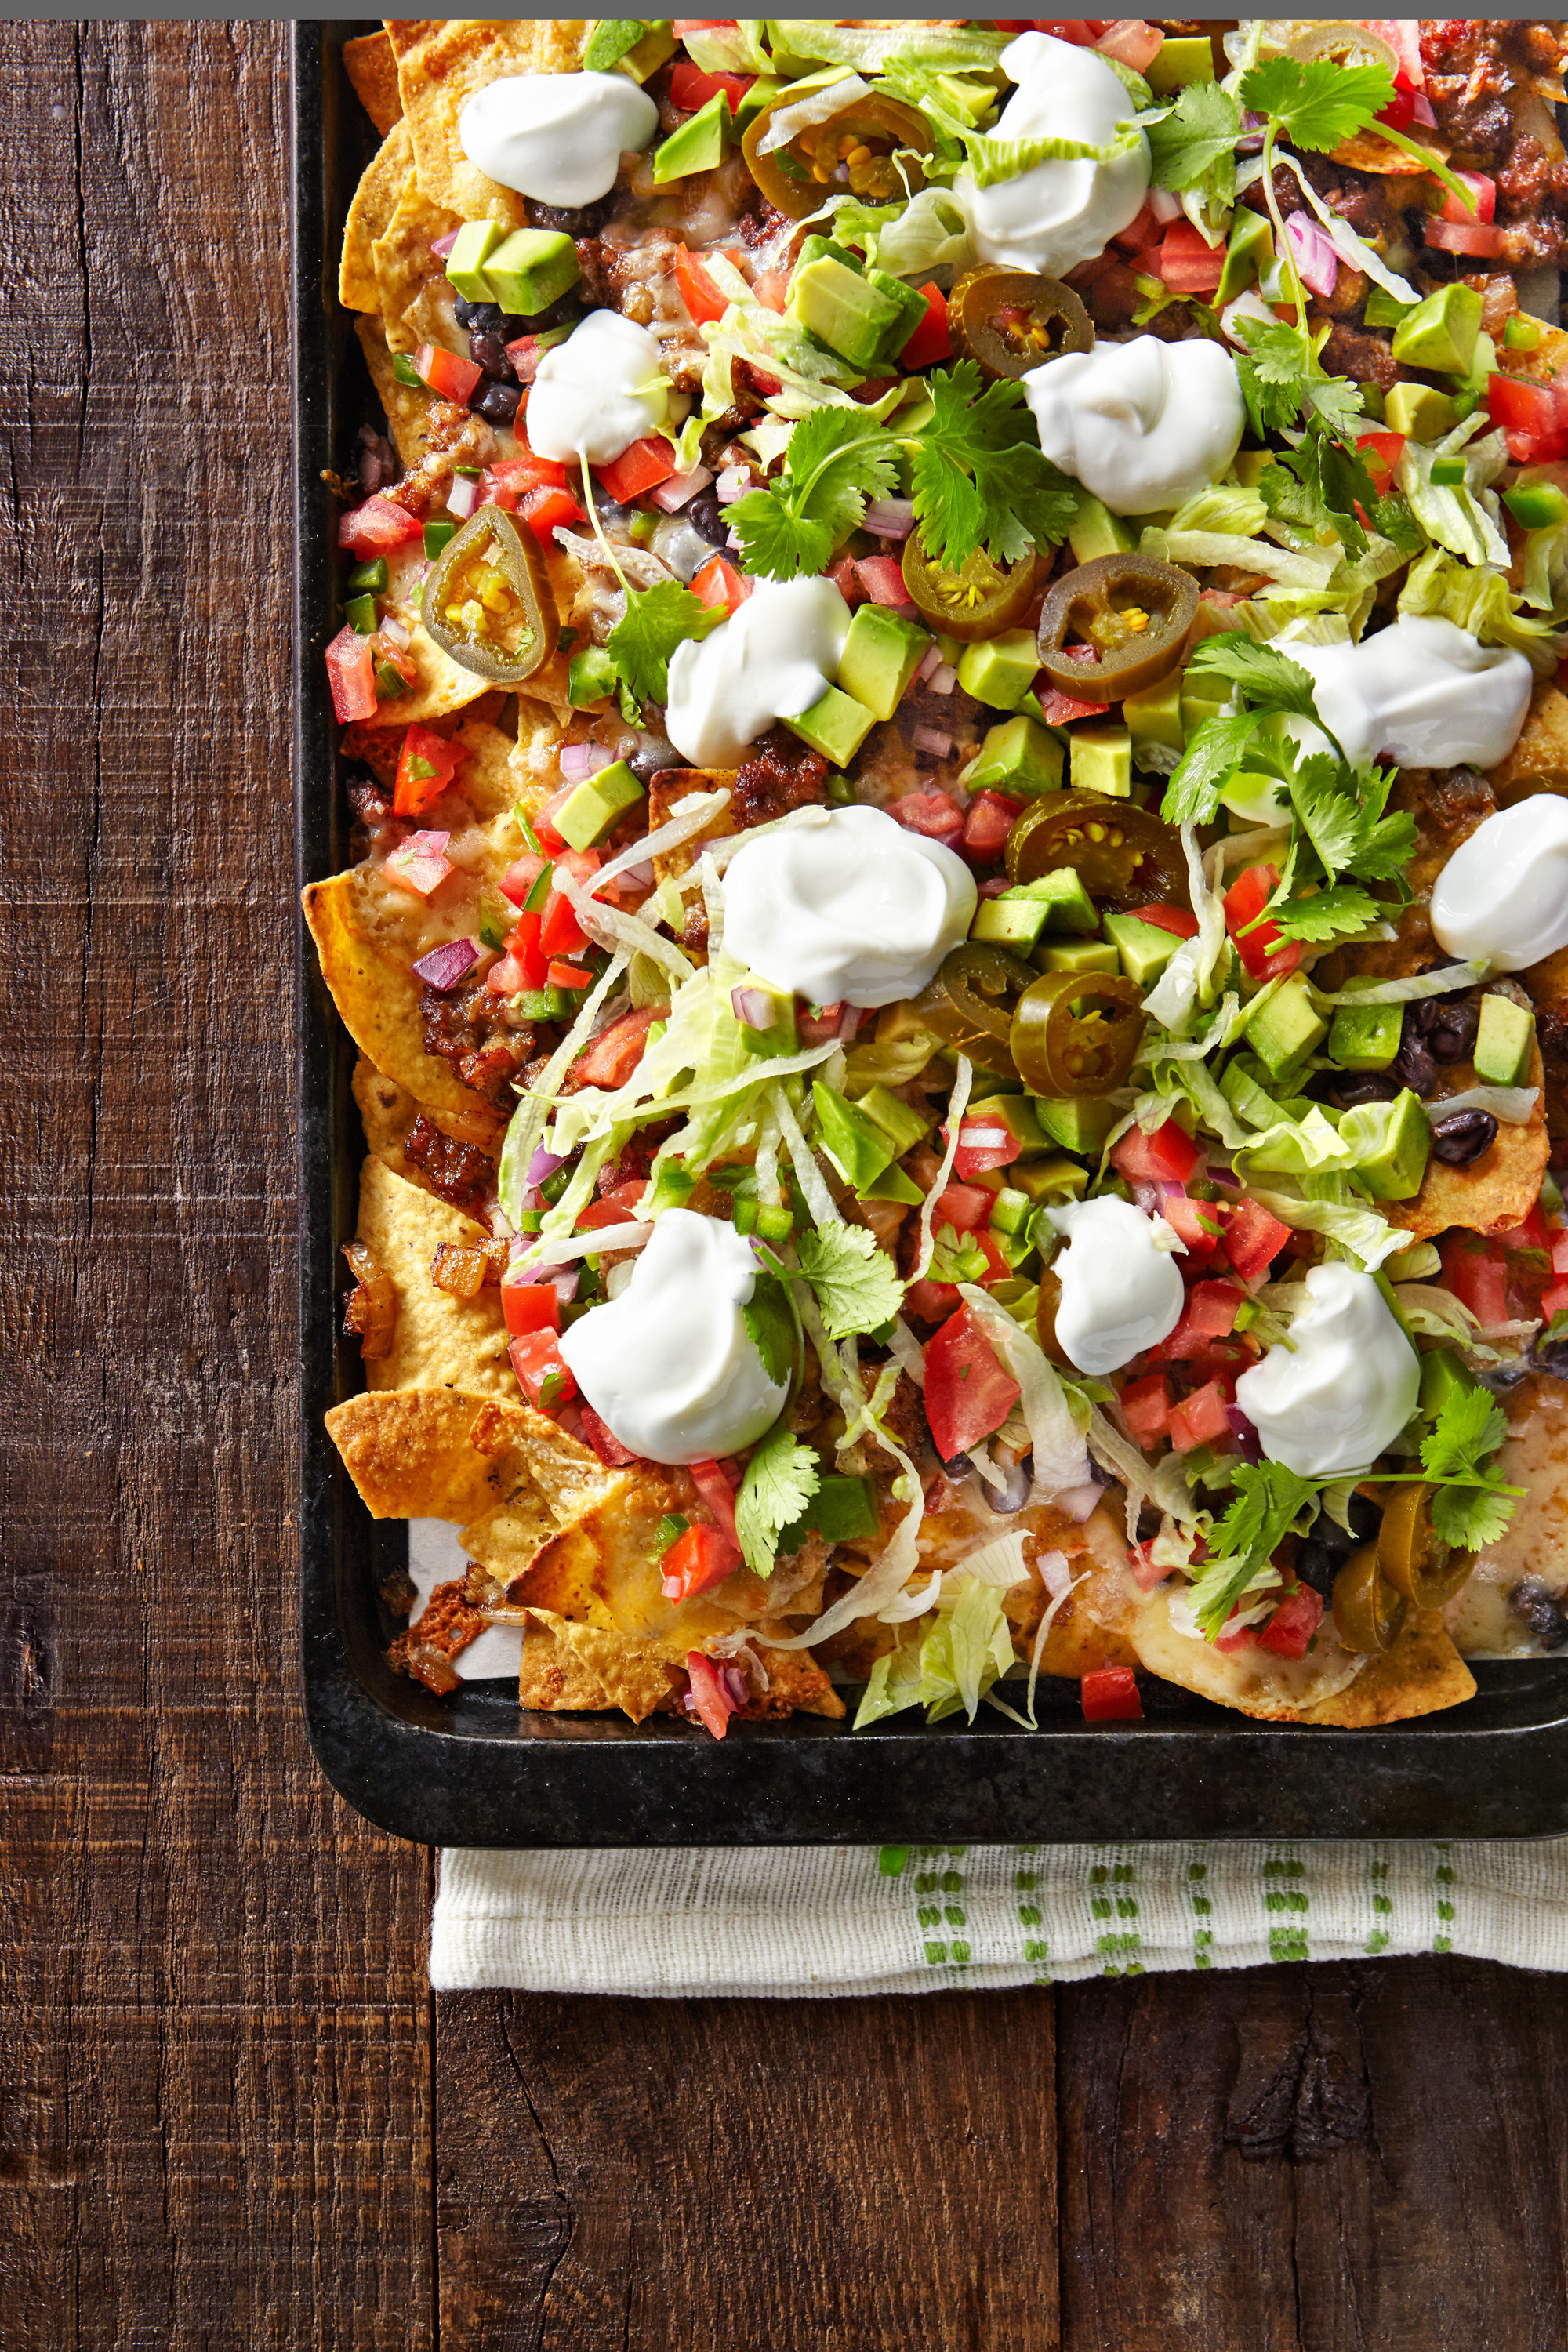 Super Bowl Dinner Ideas  70 Super Bowl Party Food Recipes & Ideas 2017 Country